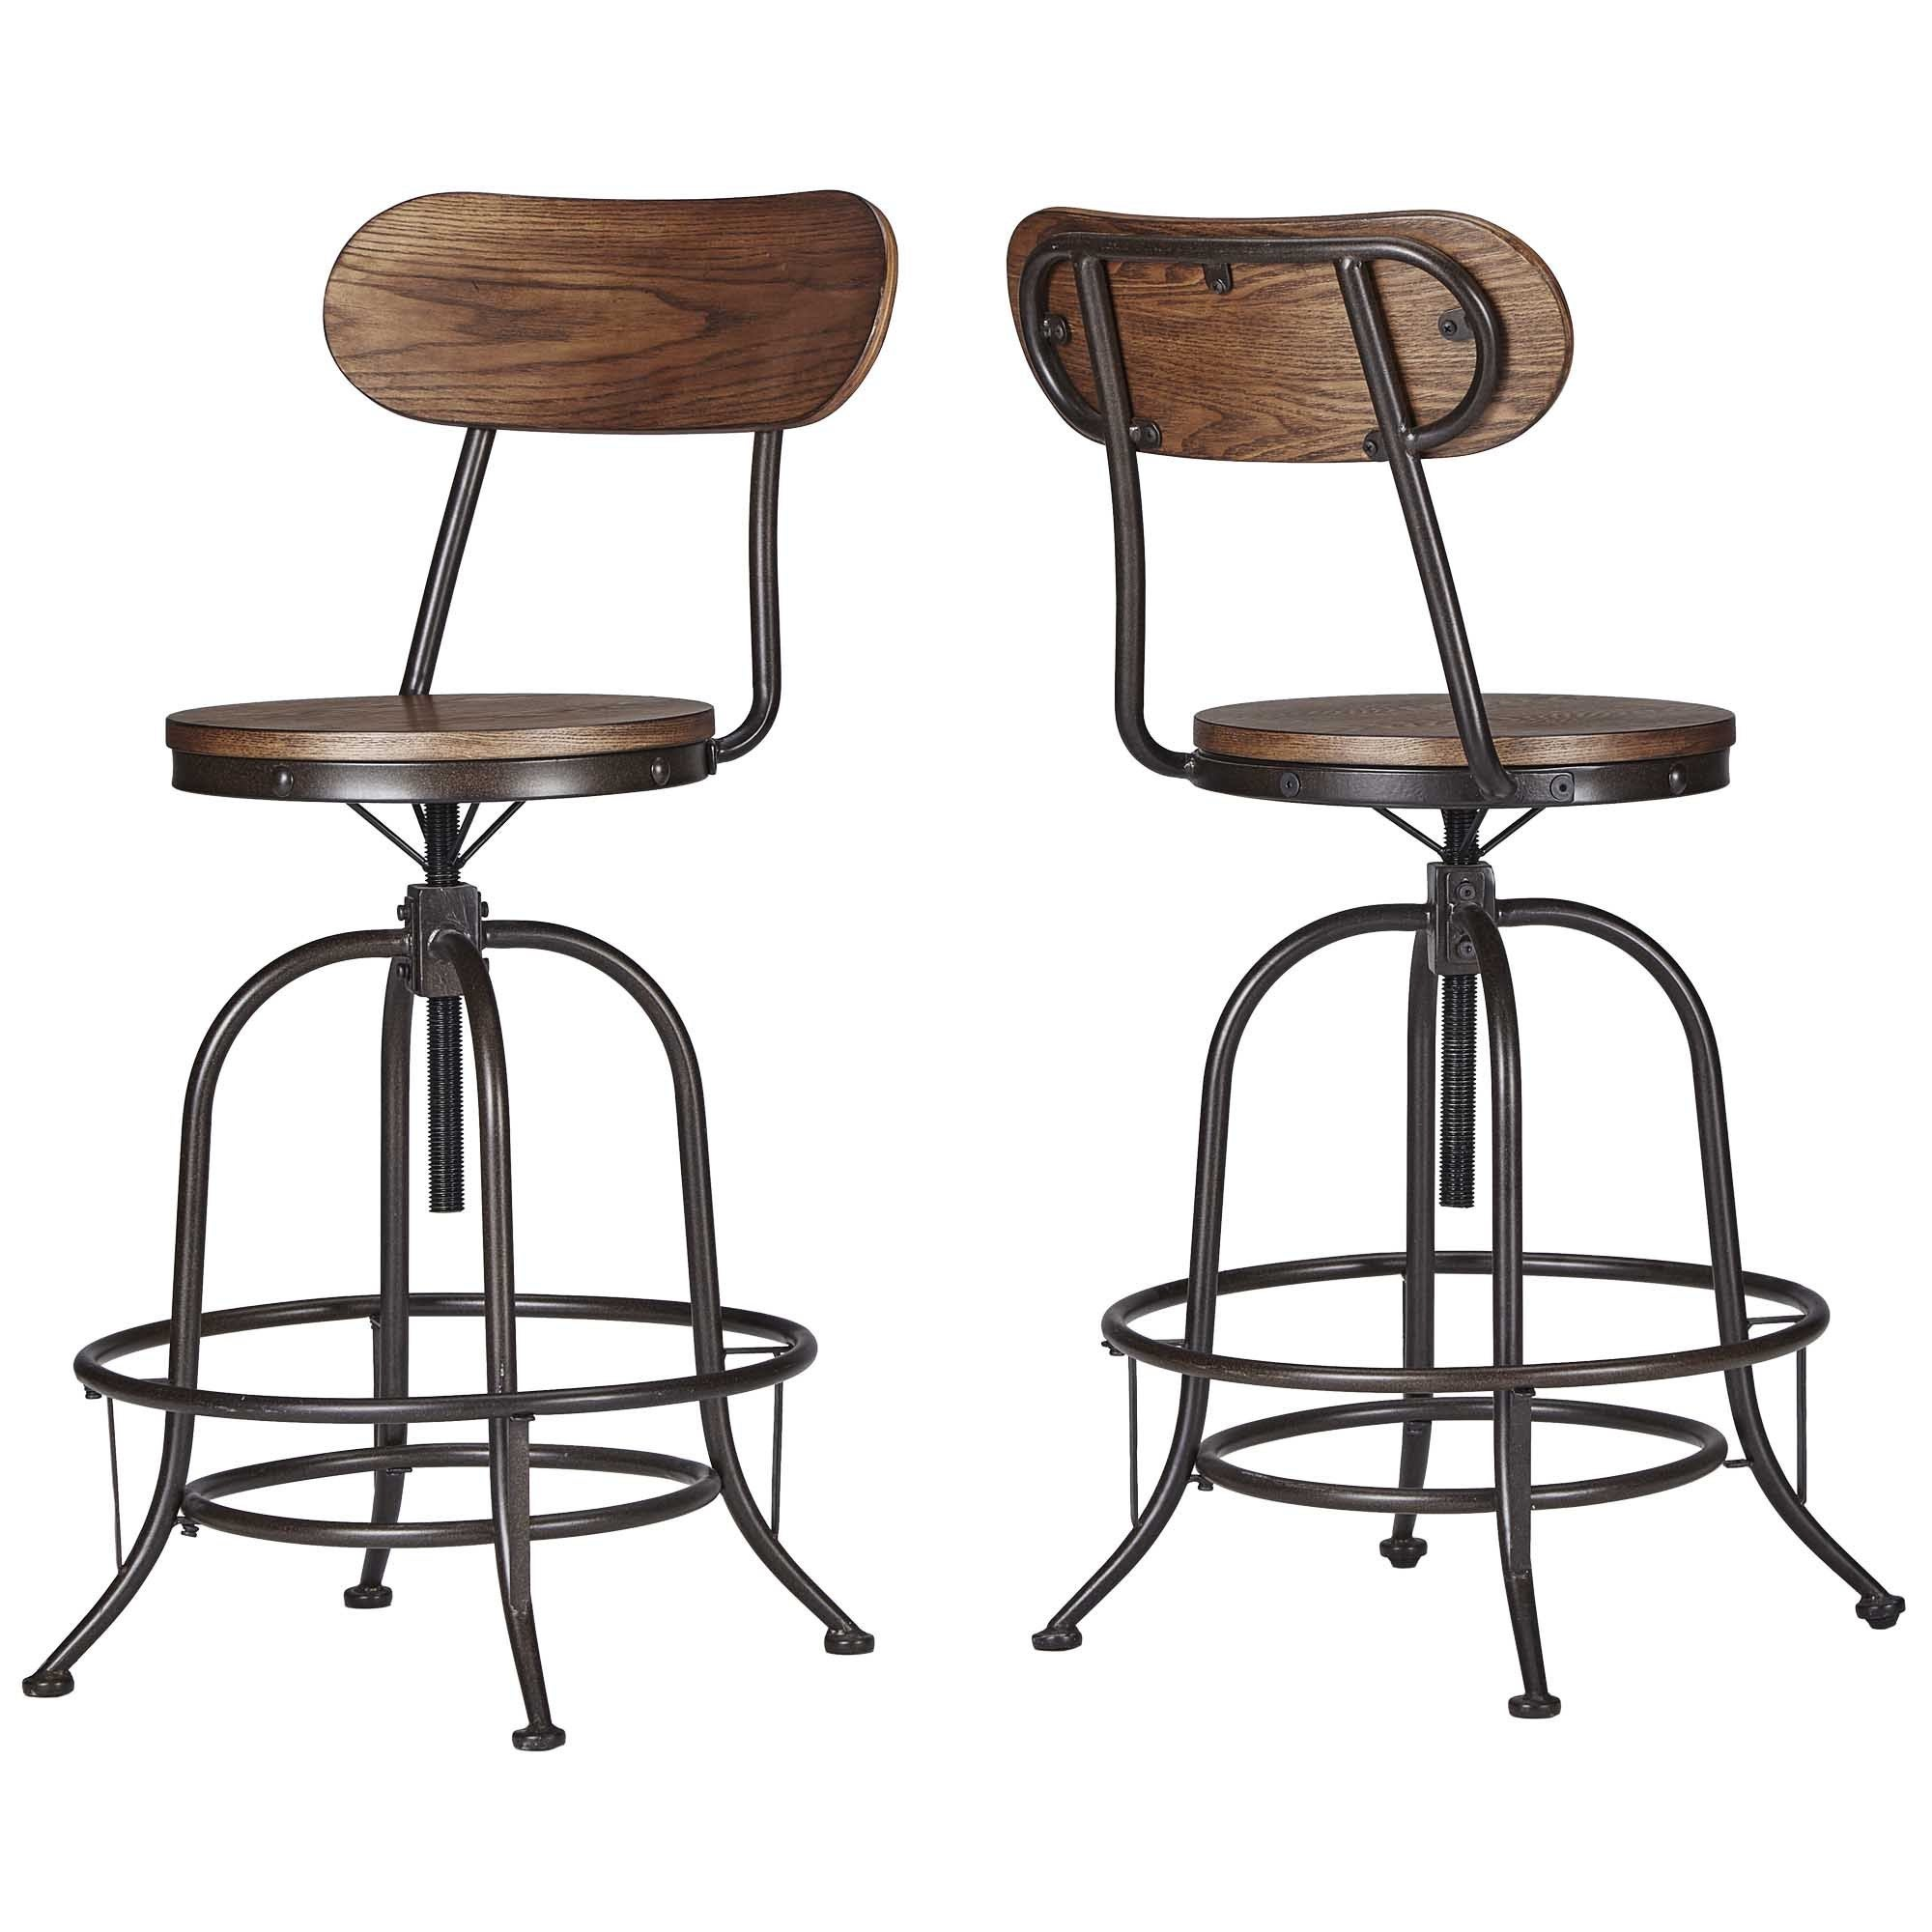 Berwick Iron Industrial Adjustable Counter Height High Back Stools (Set of  2) by iNSPIRE Q Classic - Free Shipping Today - Overstock.com - 18016299